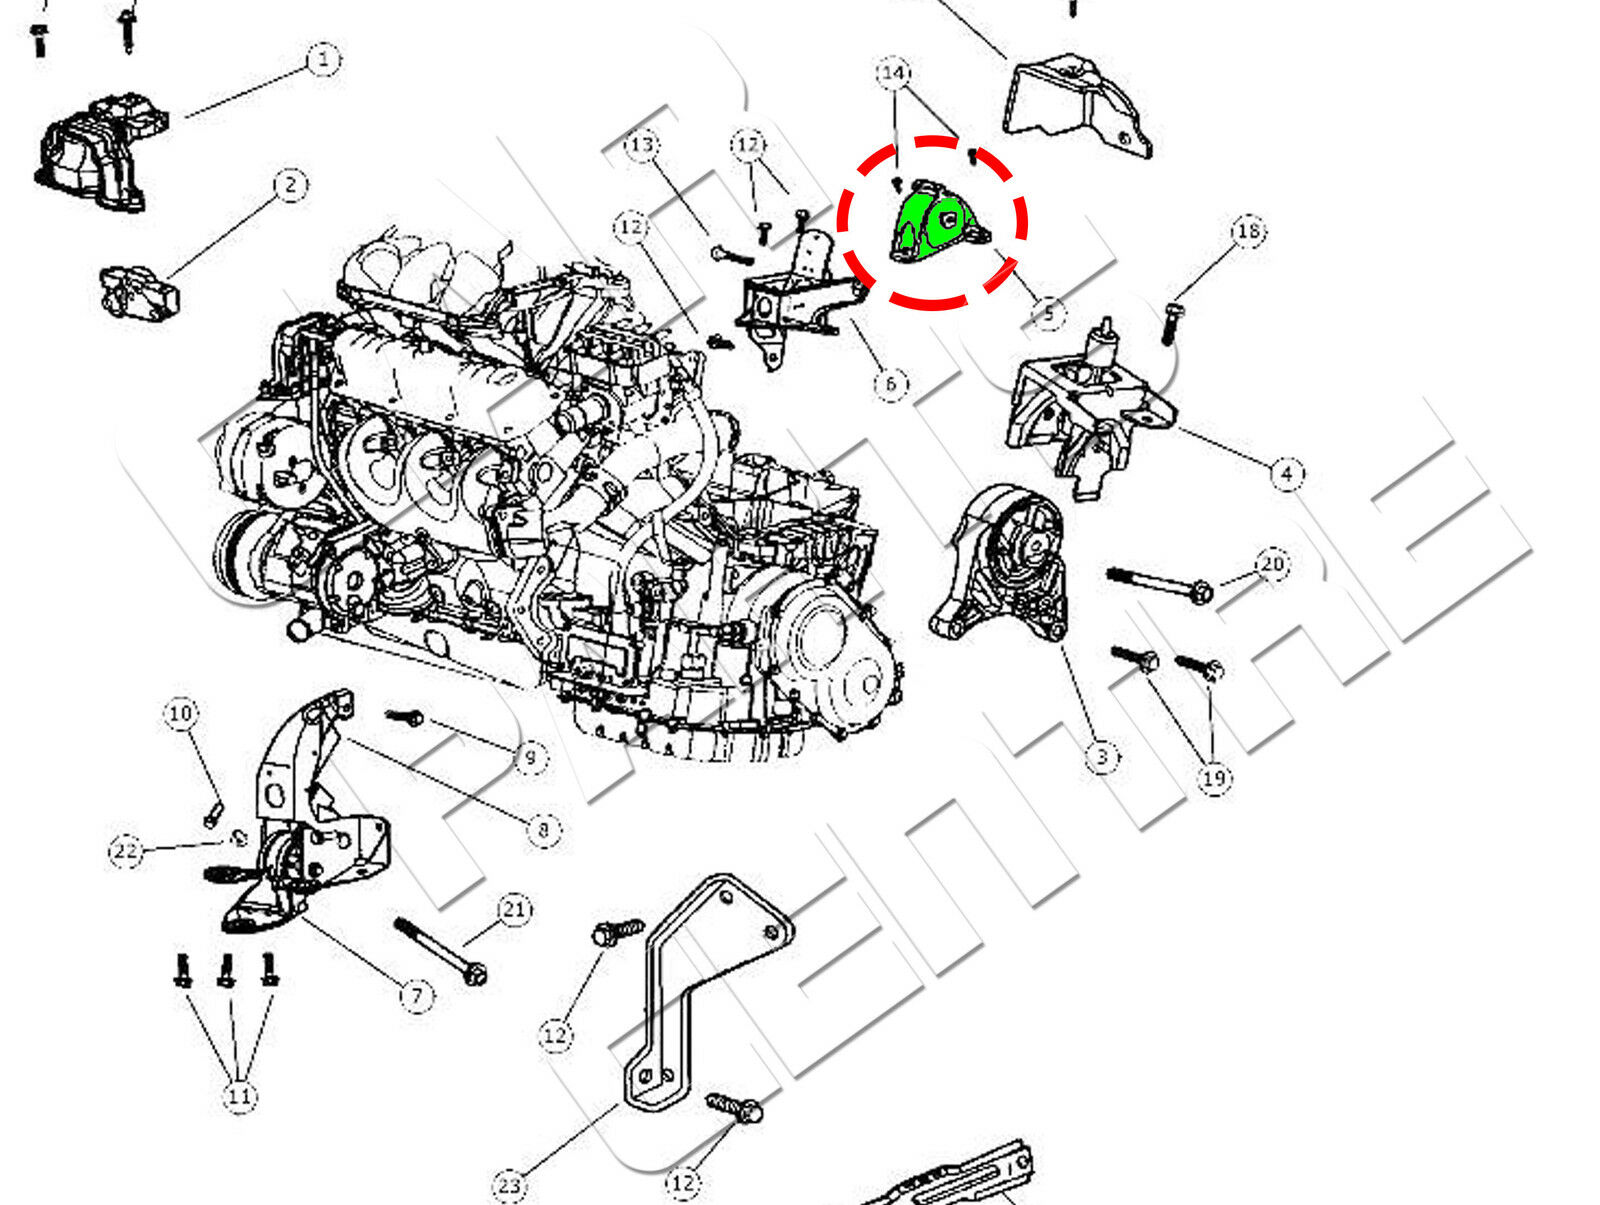 Chrysler Sebring Coolant Diagram Trusted Wiring 2 7 Engine 2004 Data Schema U2022 Town And Country